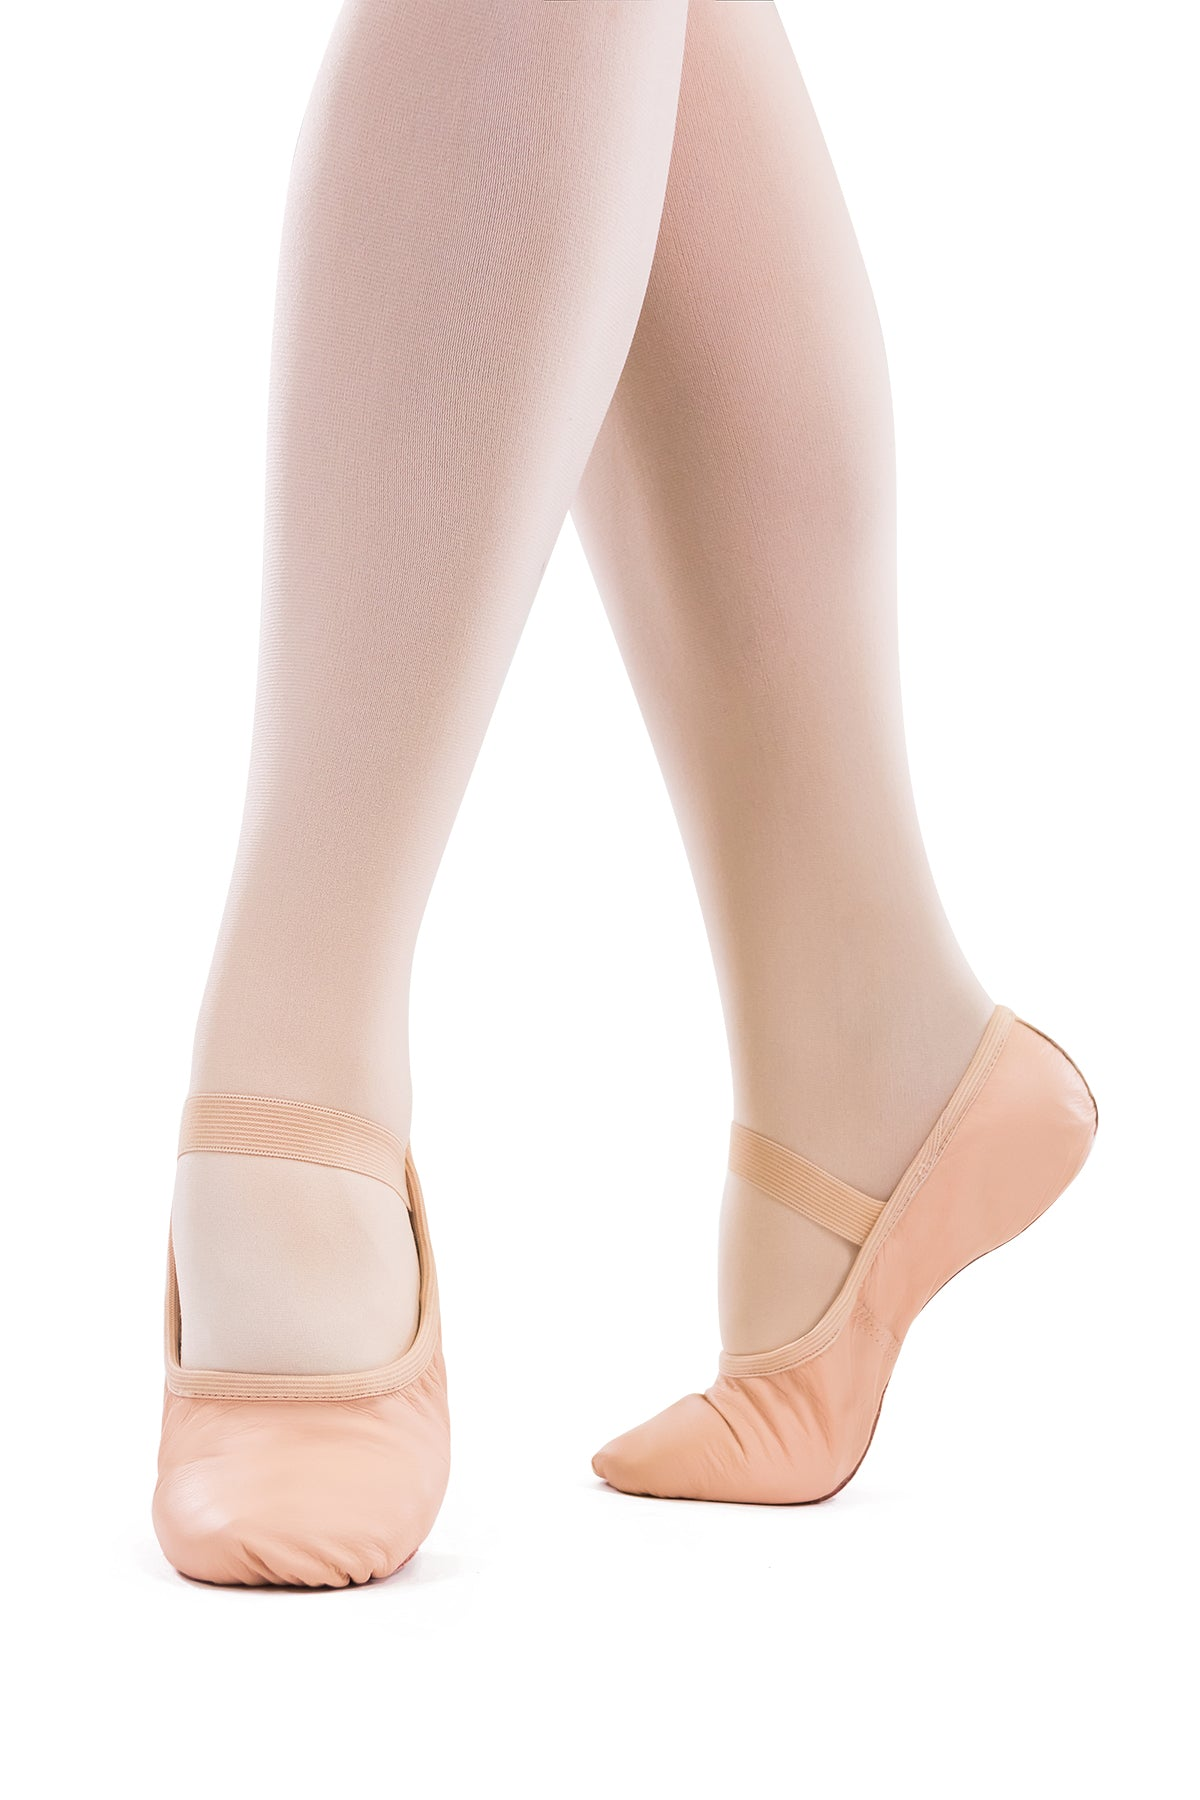 So Danca SD69 Bella Child Premium Full Sole Ballet Slipper